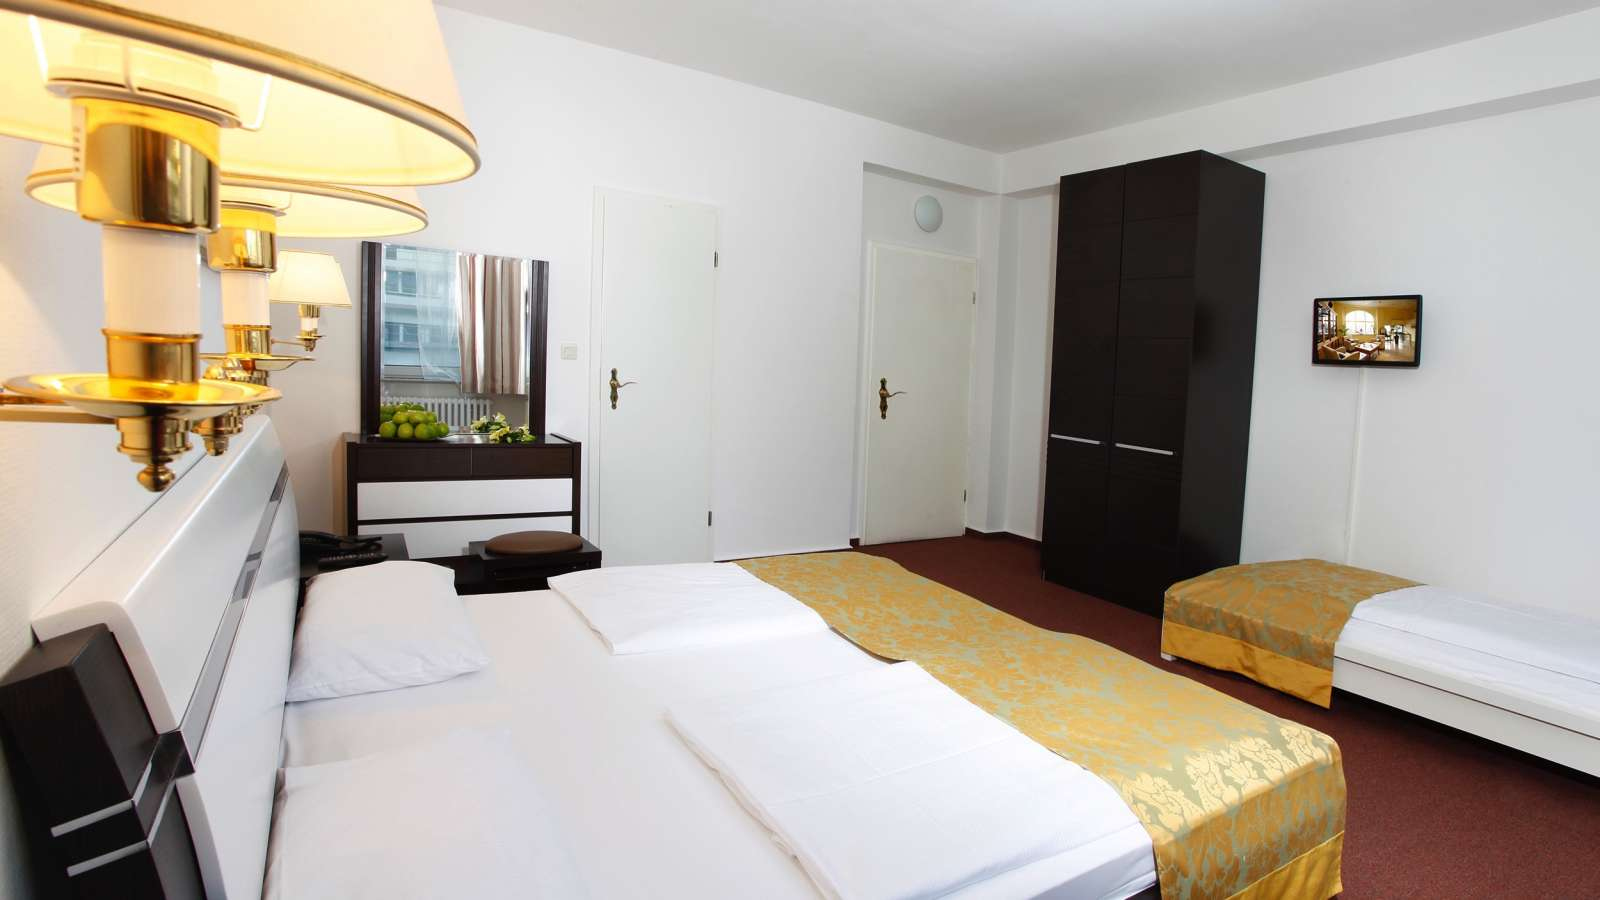 A double room at Centro Hotel Citygate in Hamburg